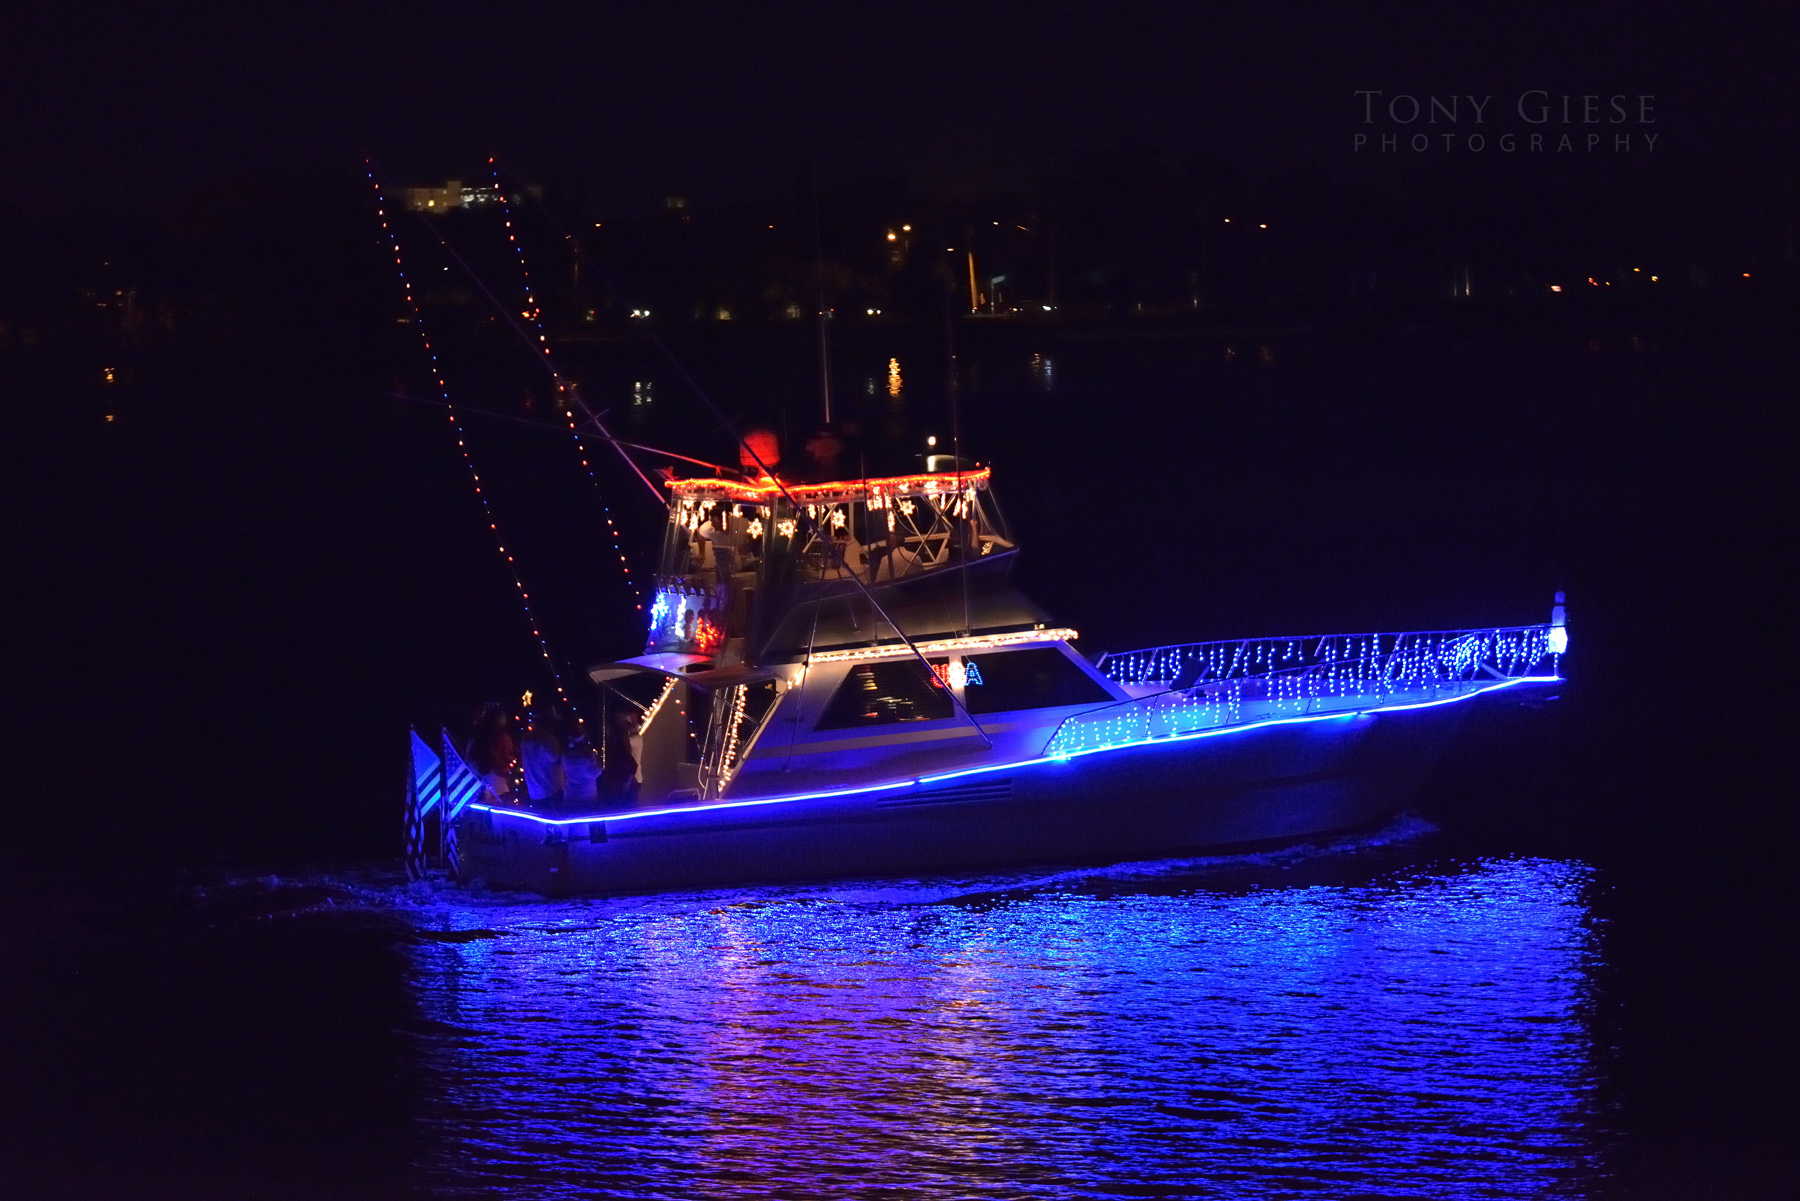 The boats colorful lighted reflections stand out in the darkness of the Halifax River, Daytona Beach, Florida.